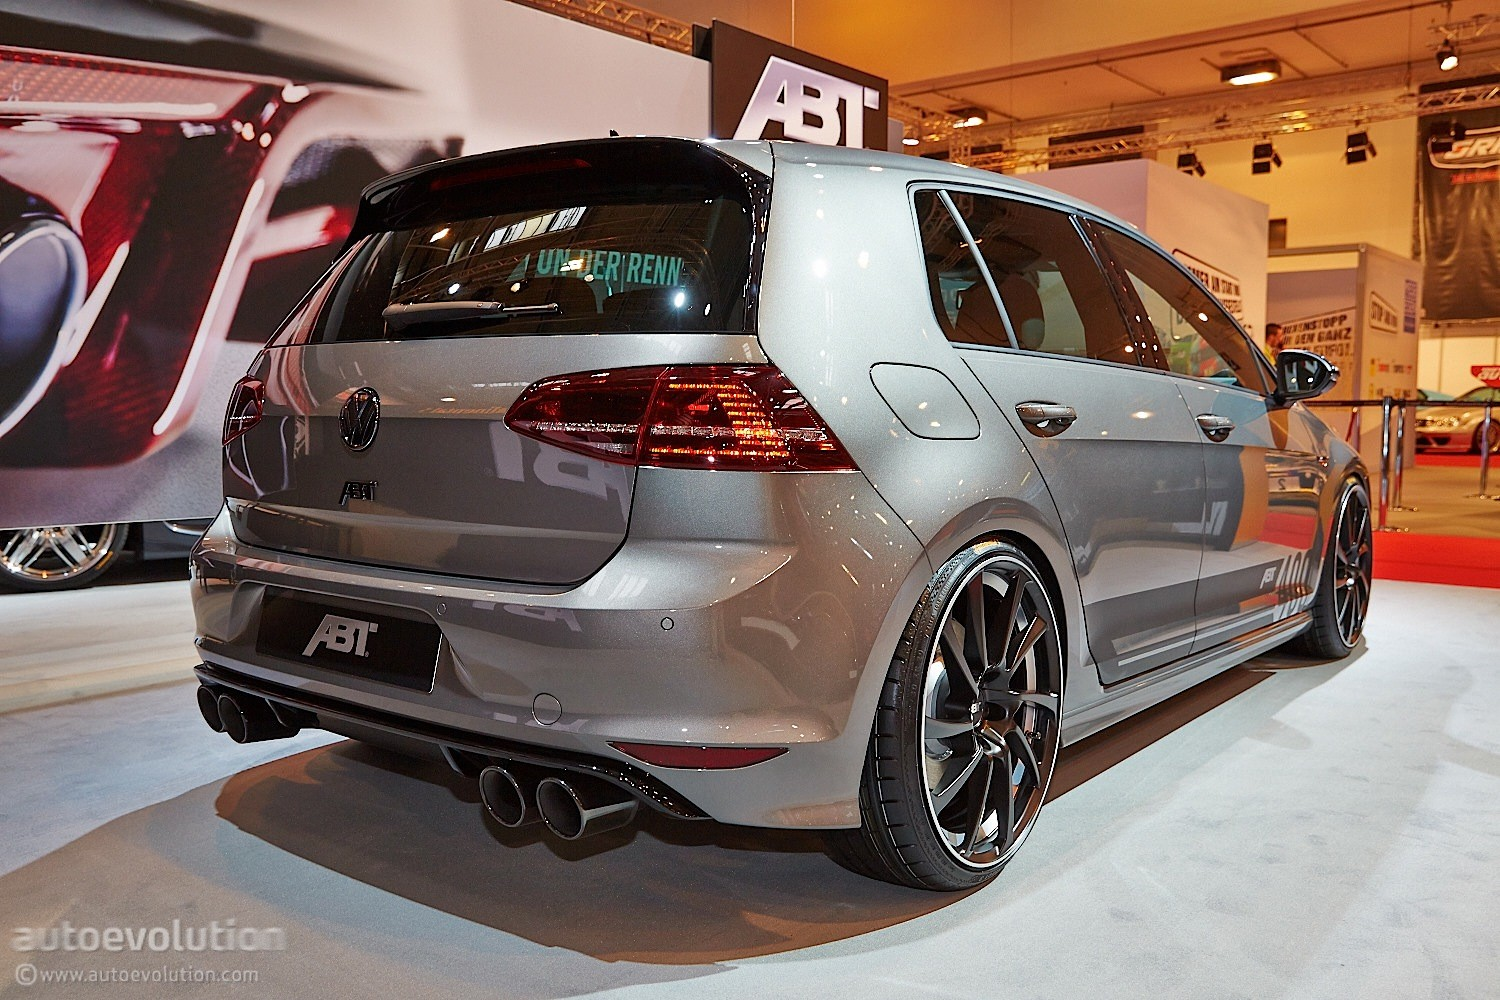 tuningcars golf r goes mental with 400 hp tuning kit from abt in essen. Black Bedroom Furniture Sets. Home Design Ideas